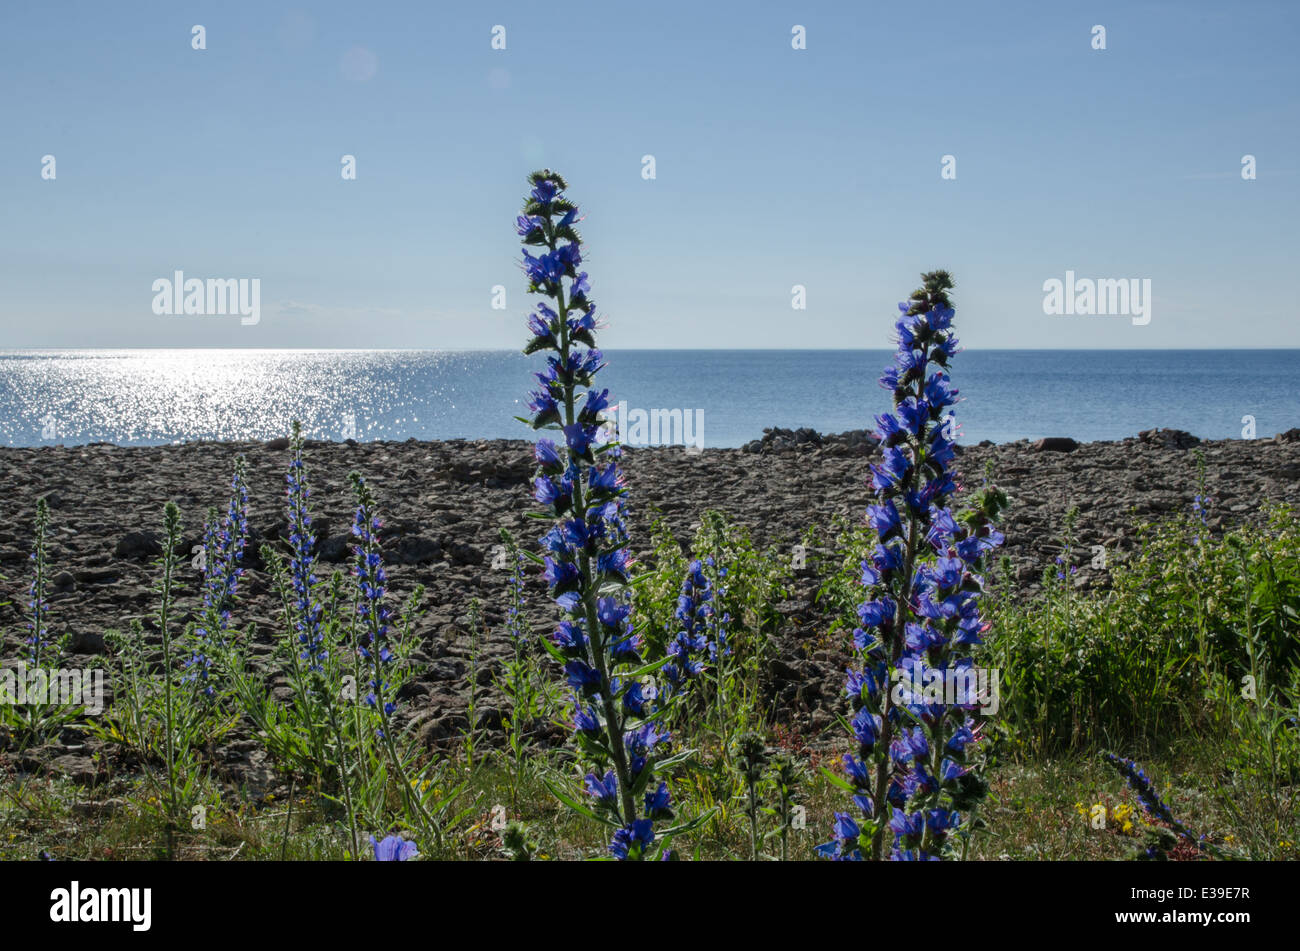 Backlit blueweed flowers by a coast in front of glittering water at the swedish island Oland - Stock Image